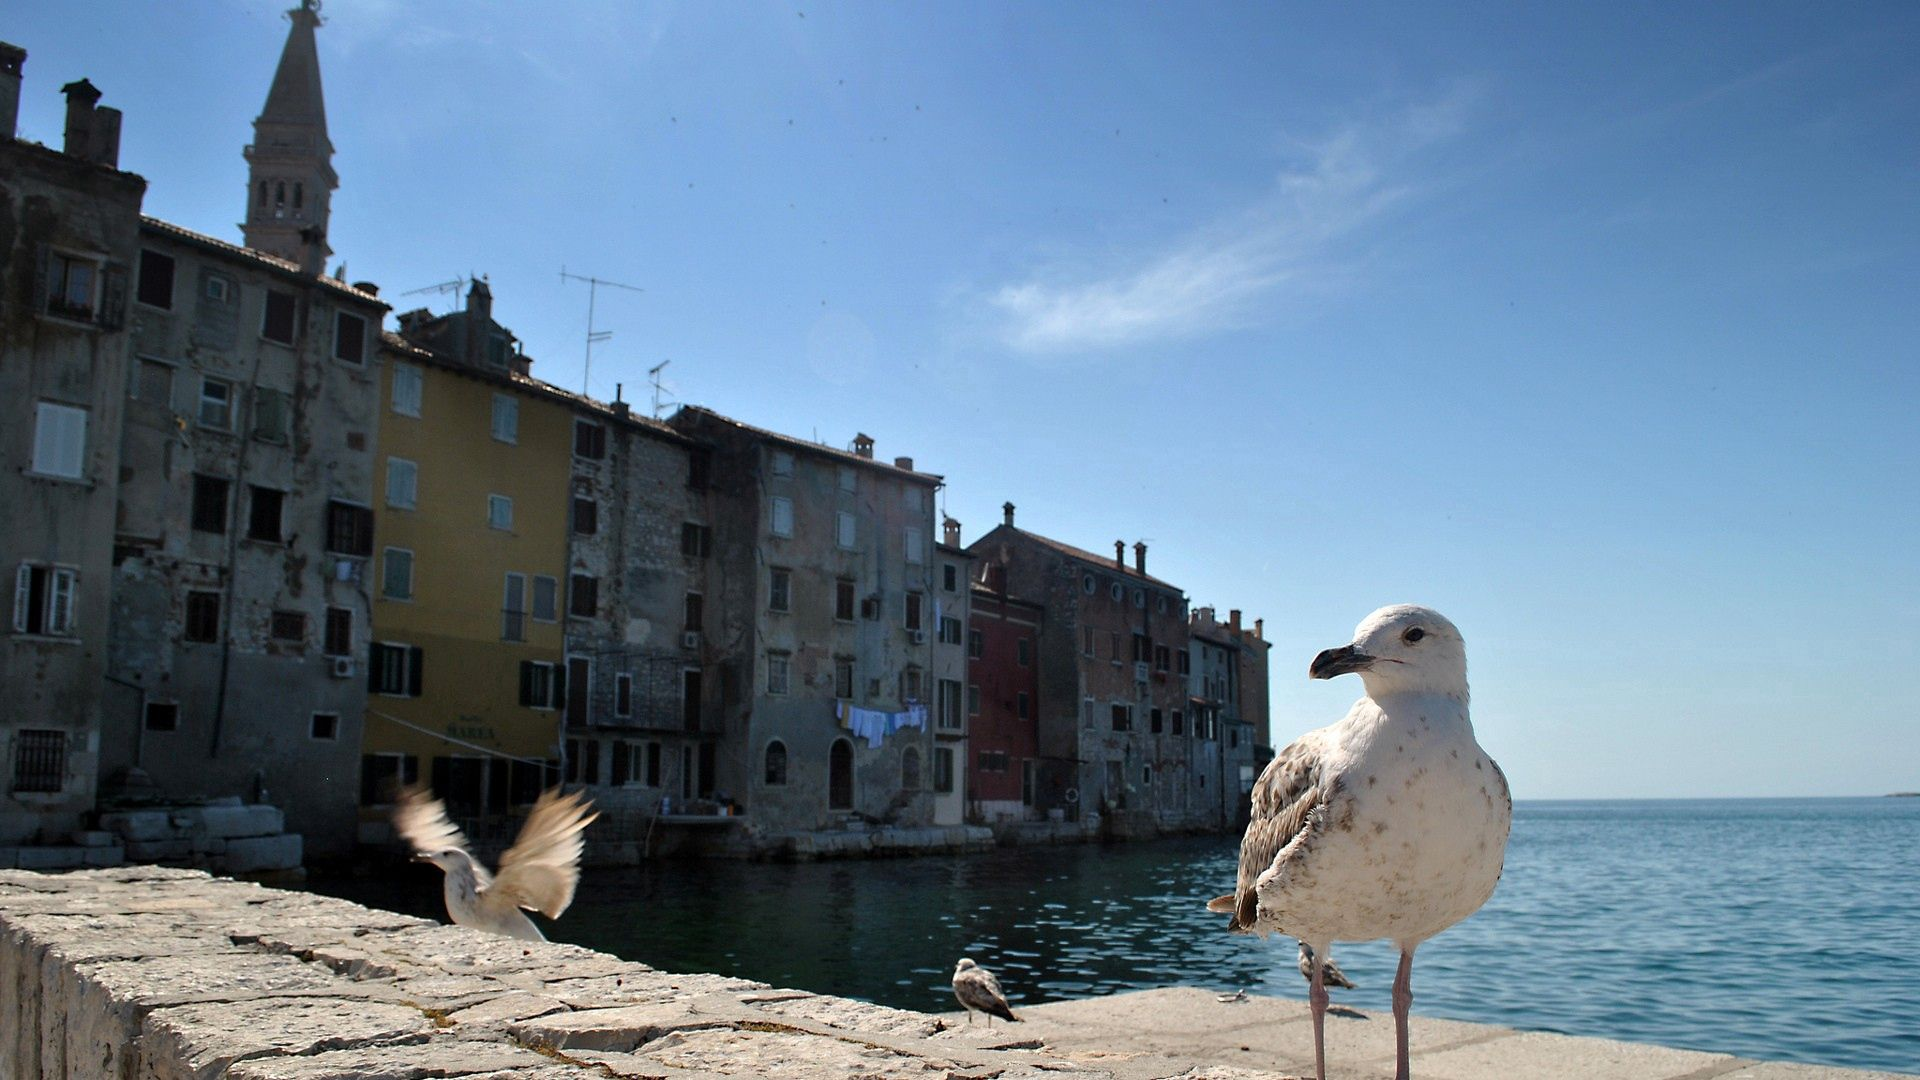 137310 download wallpaper Animals, Gull, Seagull, Bird, Building, Sea screensavers and pictures for free